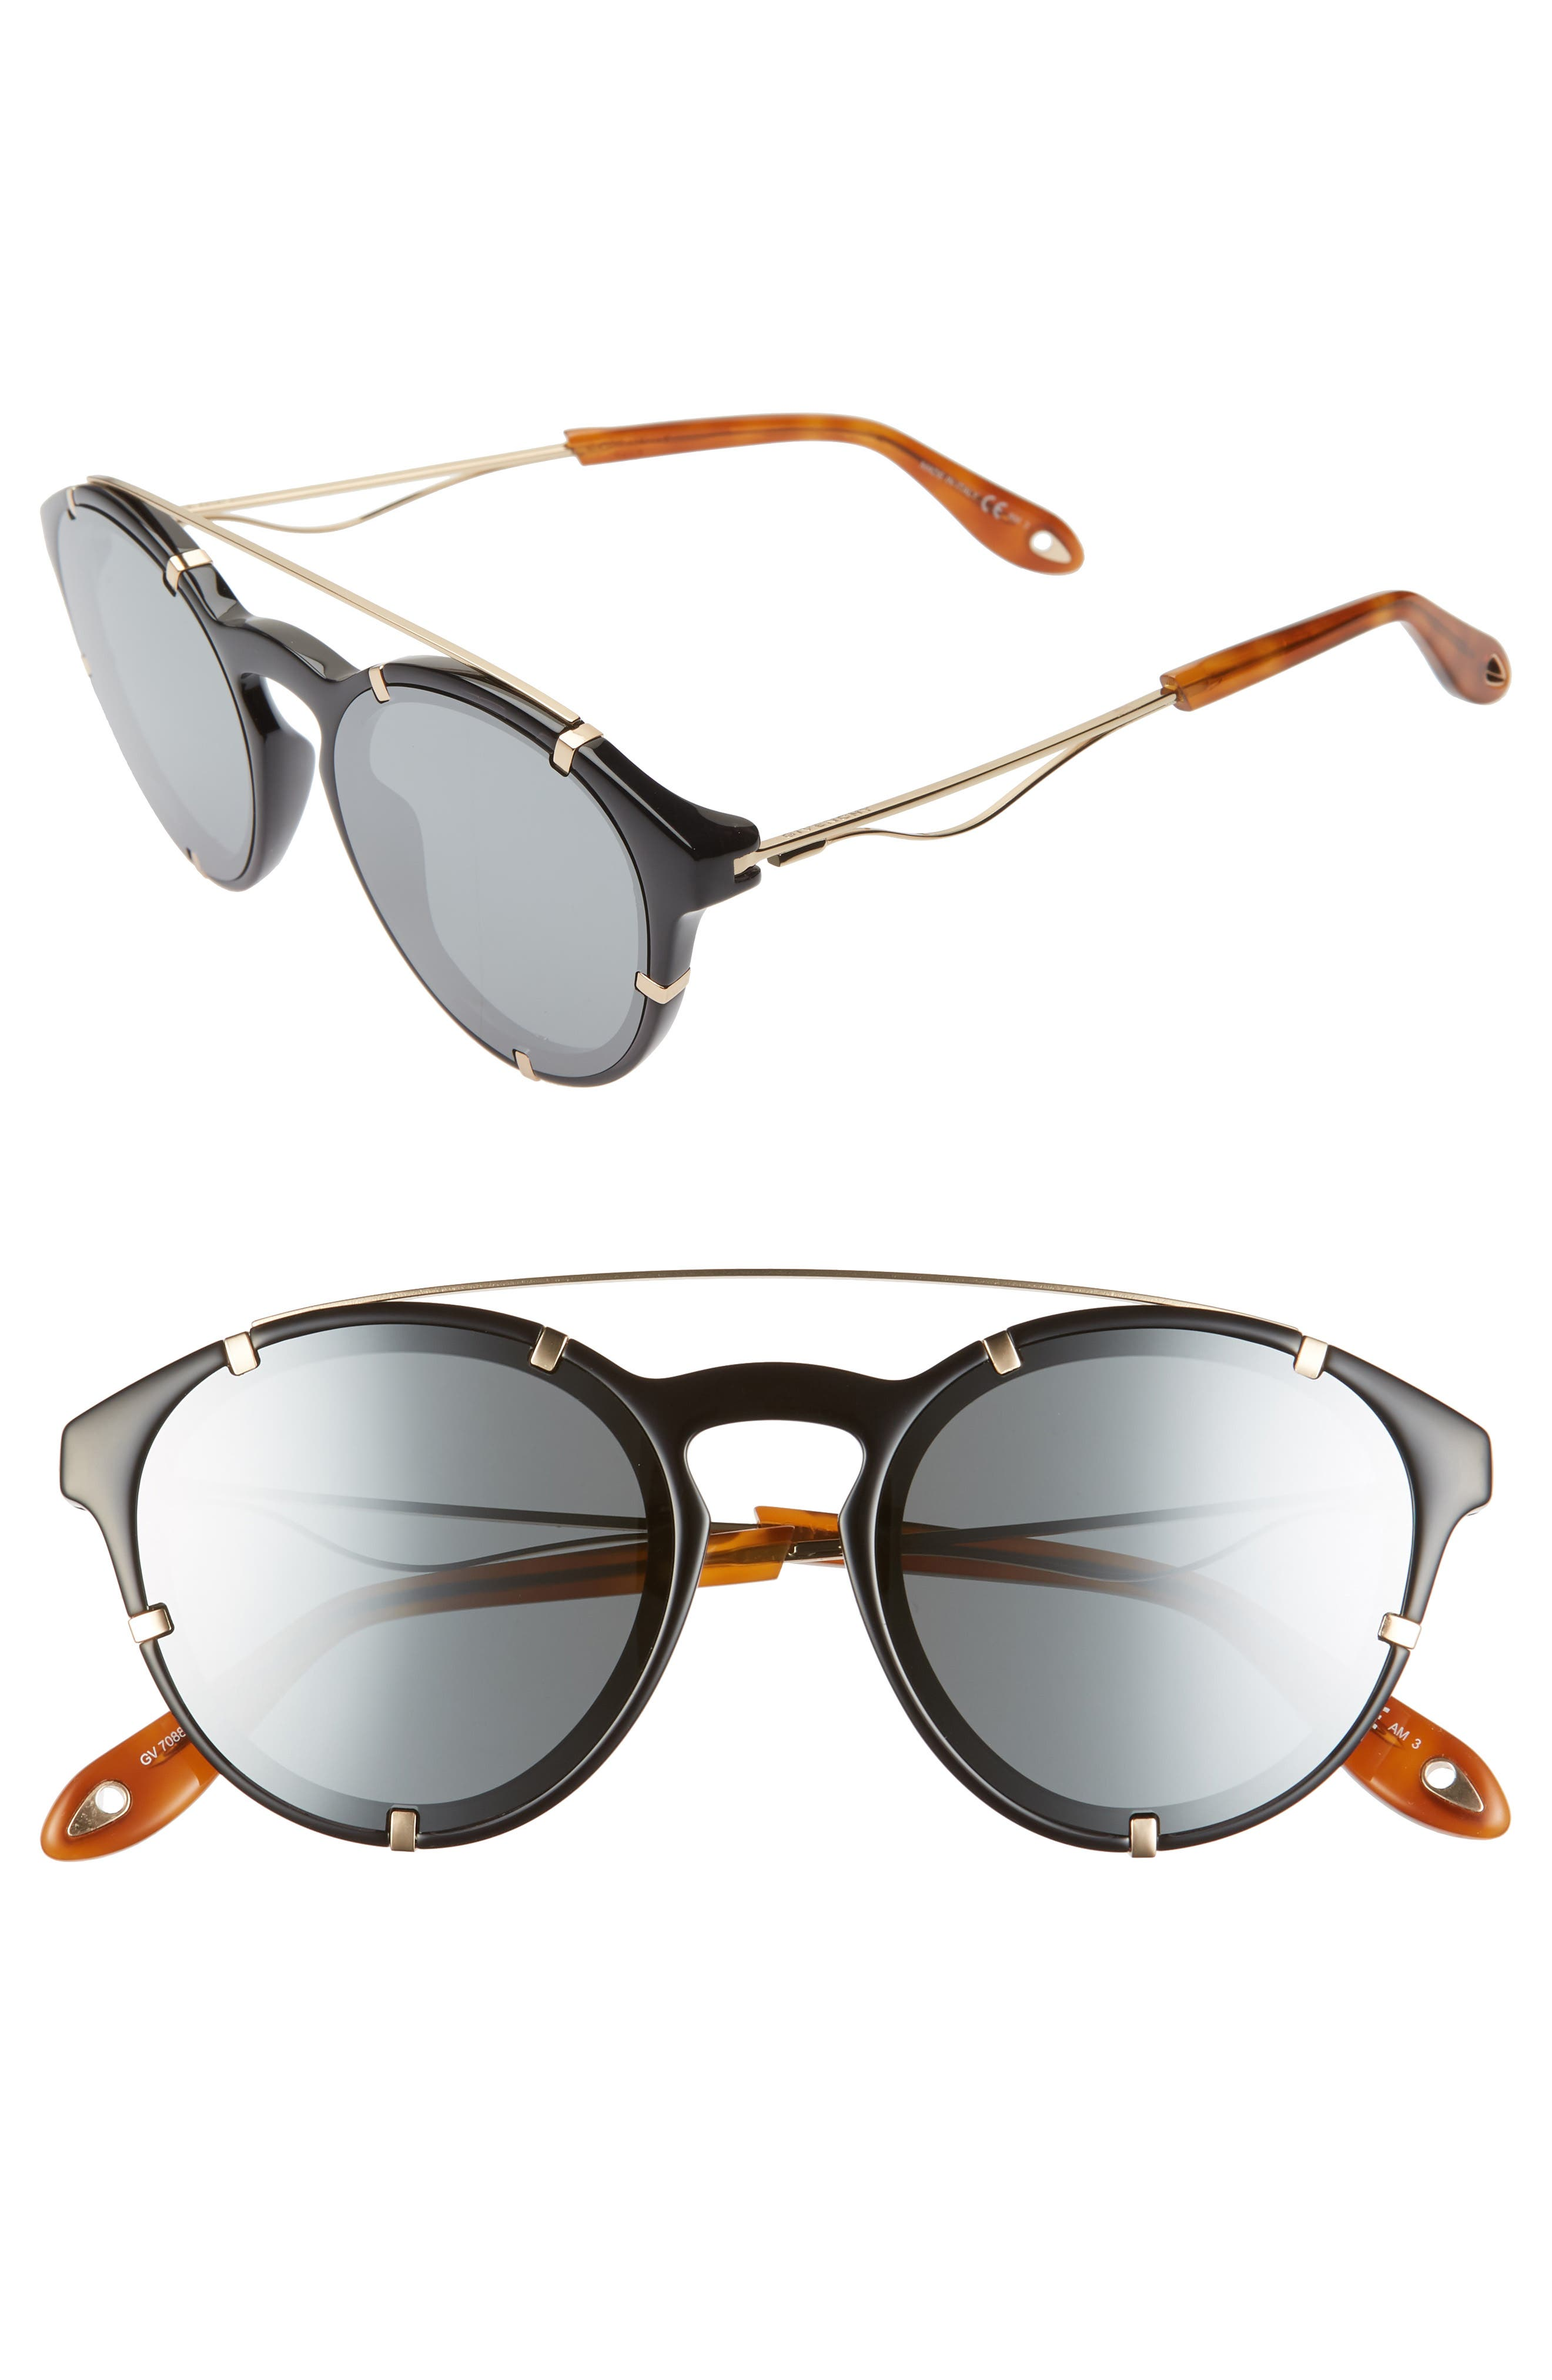 3802f48f04 Givenchy Sunglasses for Women